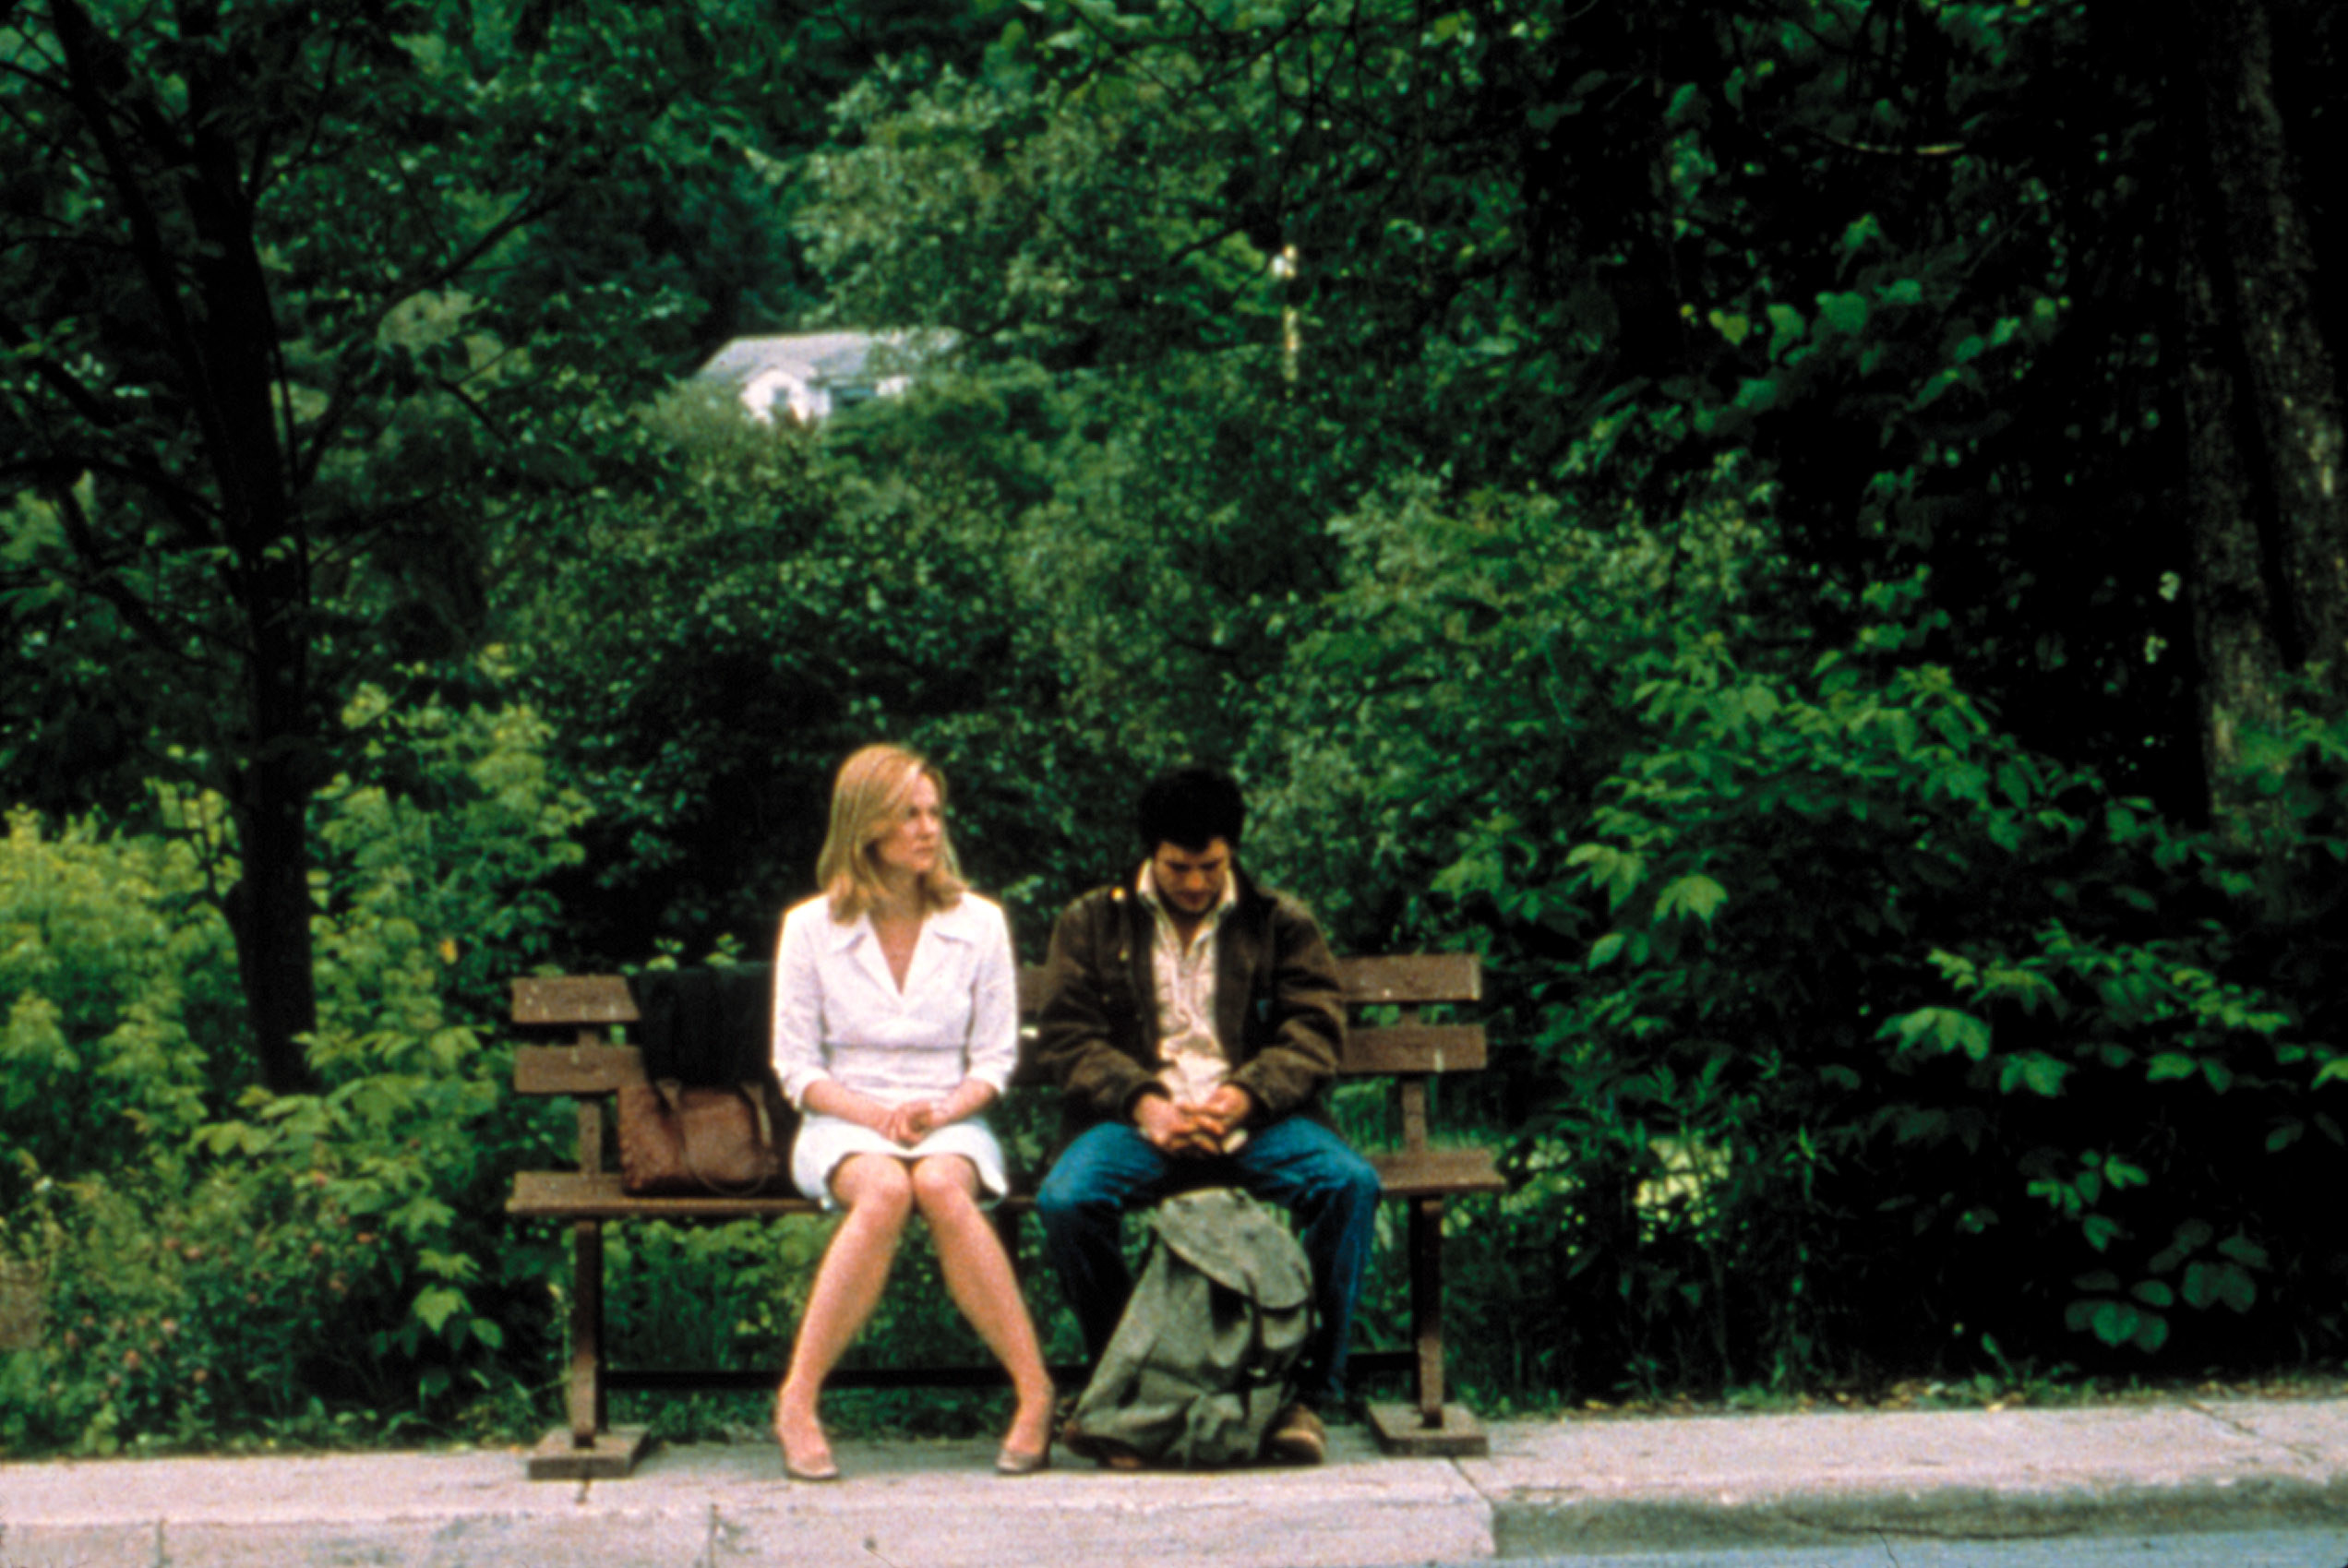 Laura Linney and Mark Ruffalo sitting on a bench.